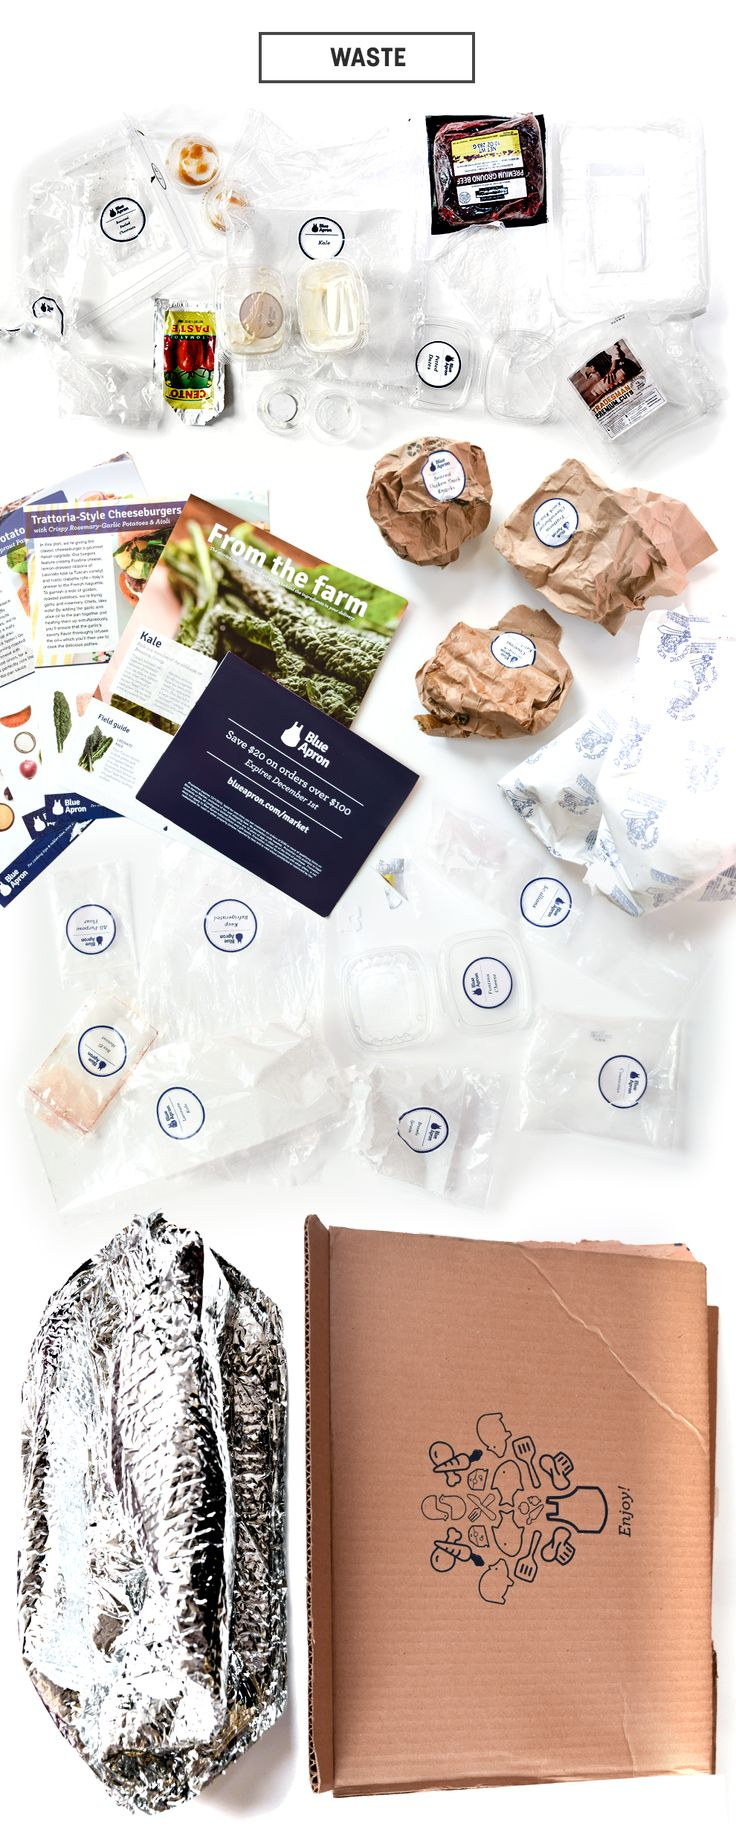 Blue apron telephone number - These Are The Trashy Consequences Of Blue Apron Delivery